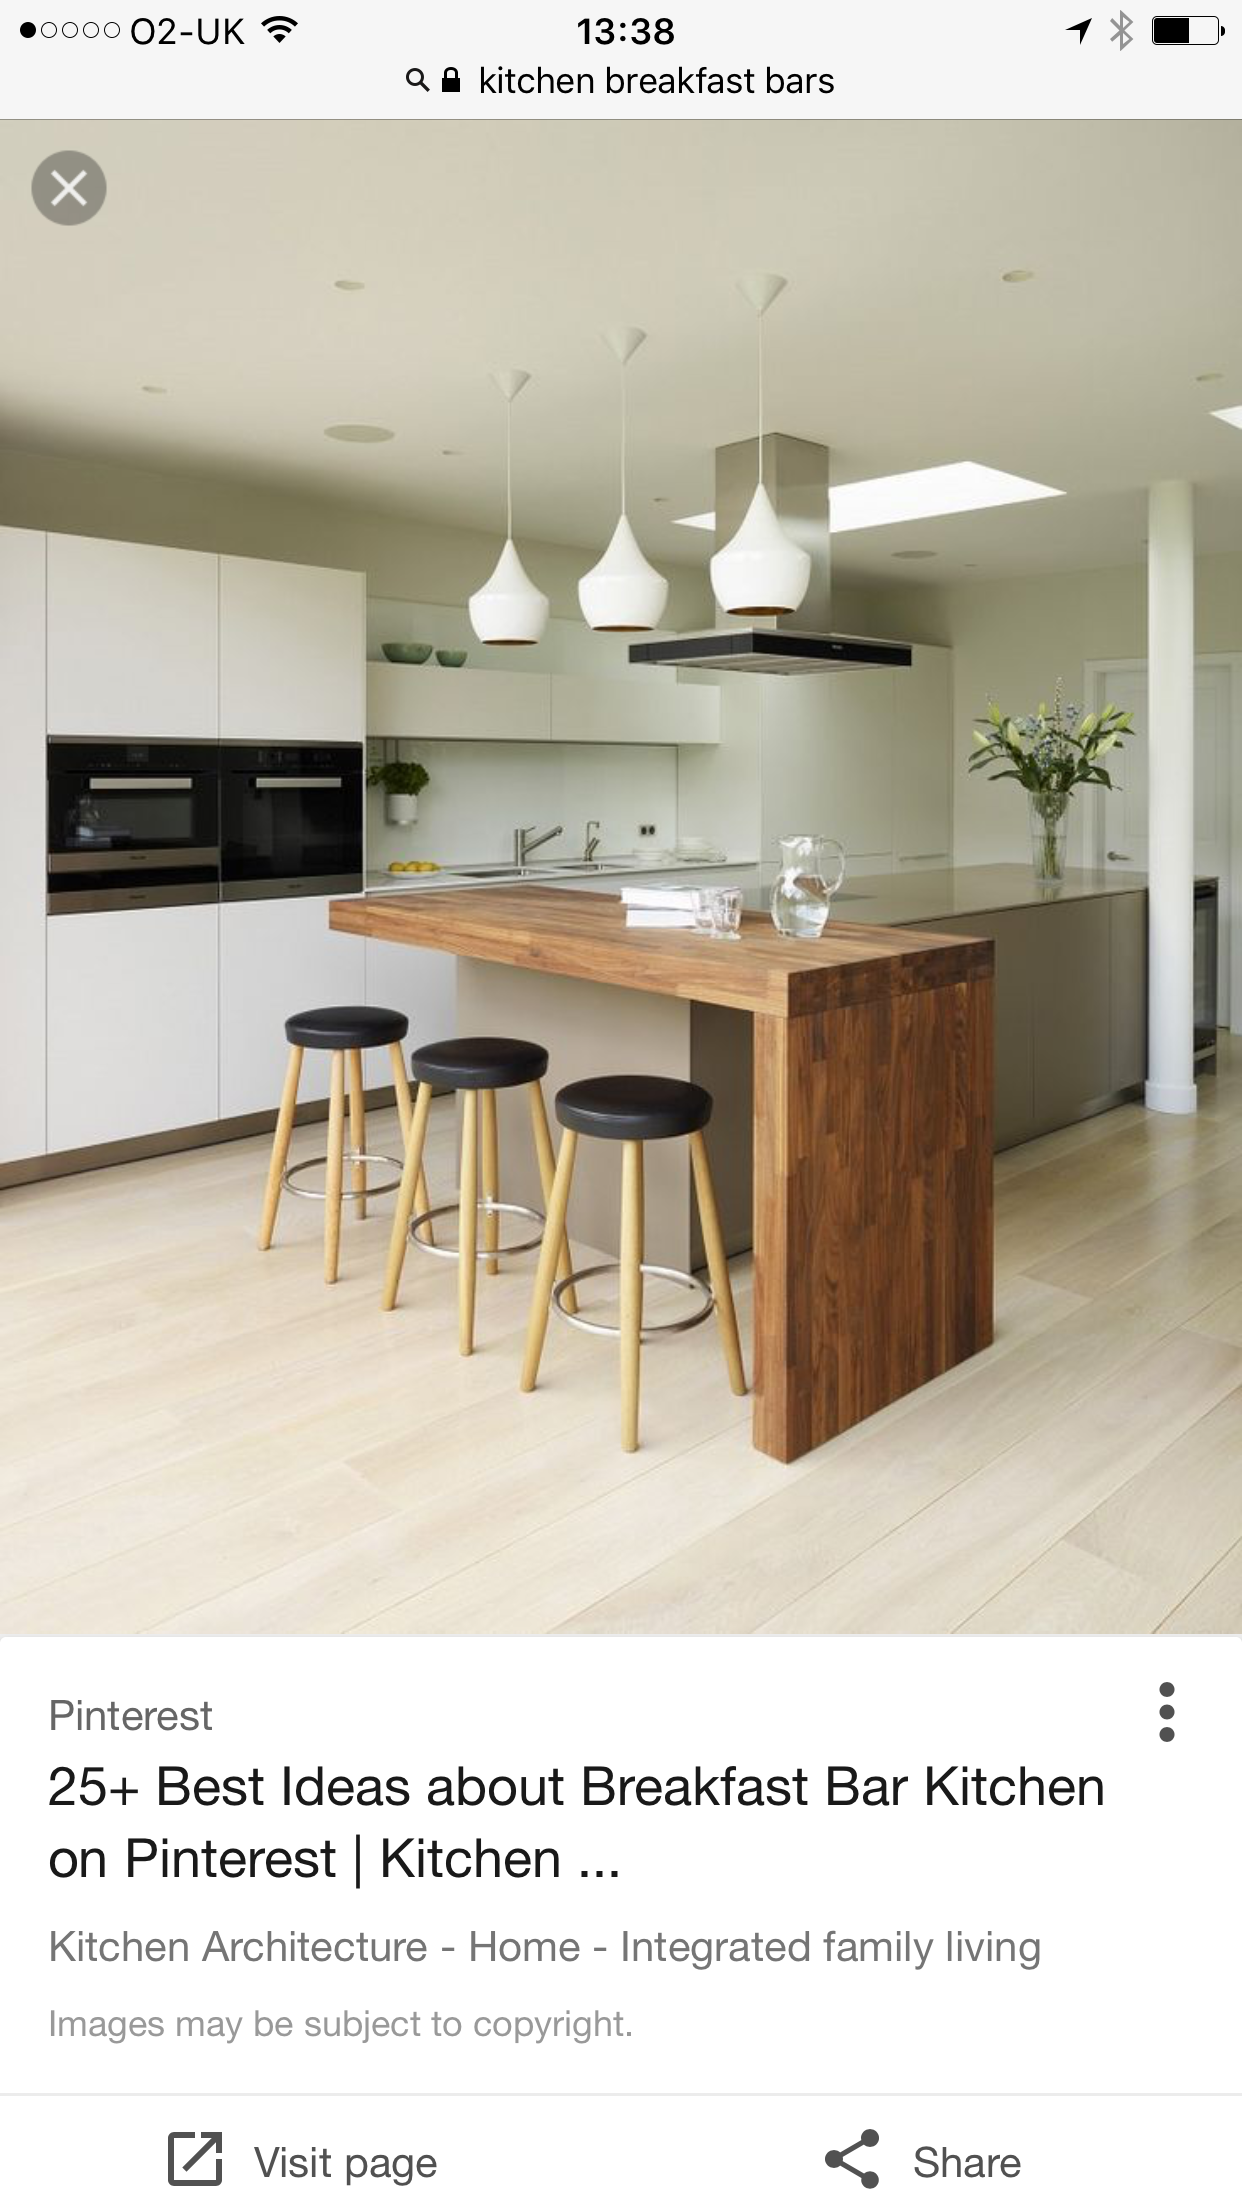 Love The Contrast Of Wood Against Other Materials Perfect Breakfast Bar Kitchen Design Small Kitchen Remodel Small Modern Kitchen